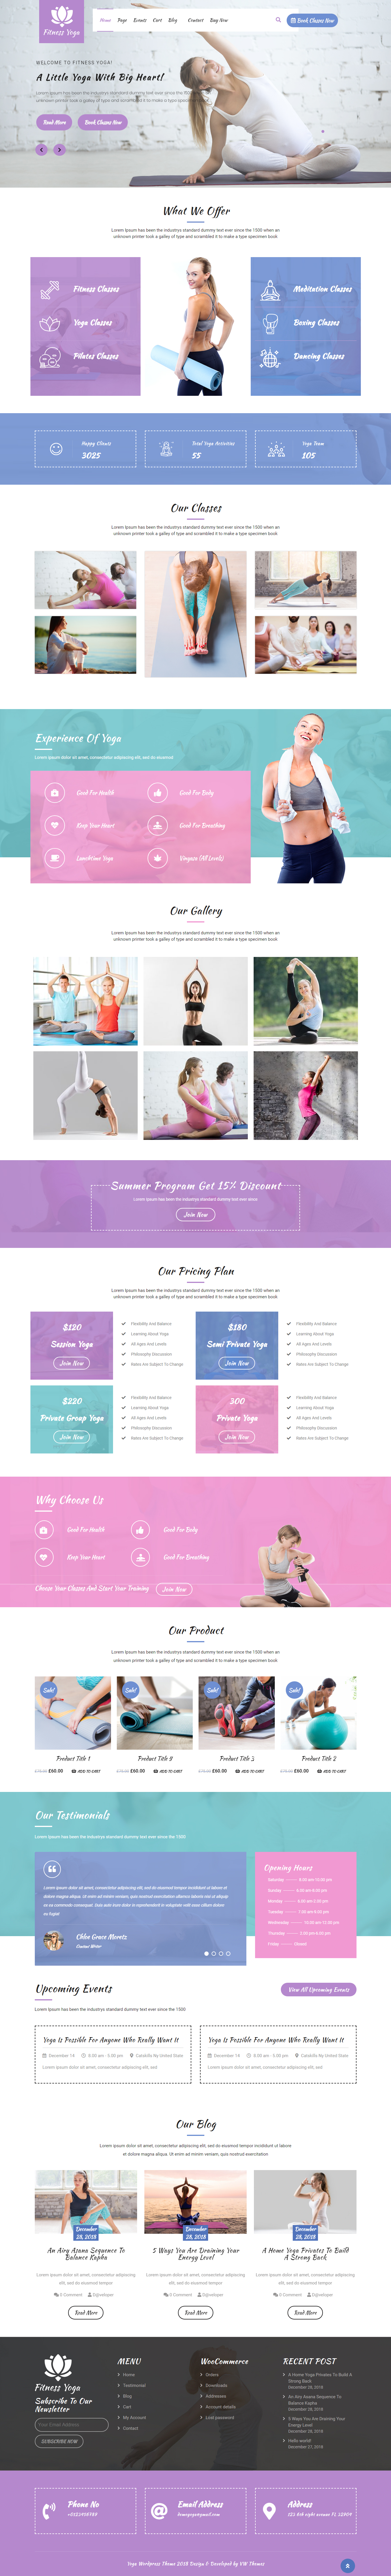 VW Yoga Fitness - Best Free Lifestyle WordPress Theme